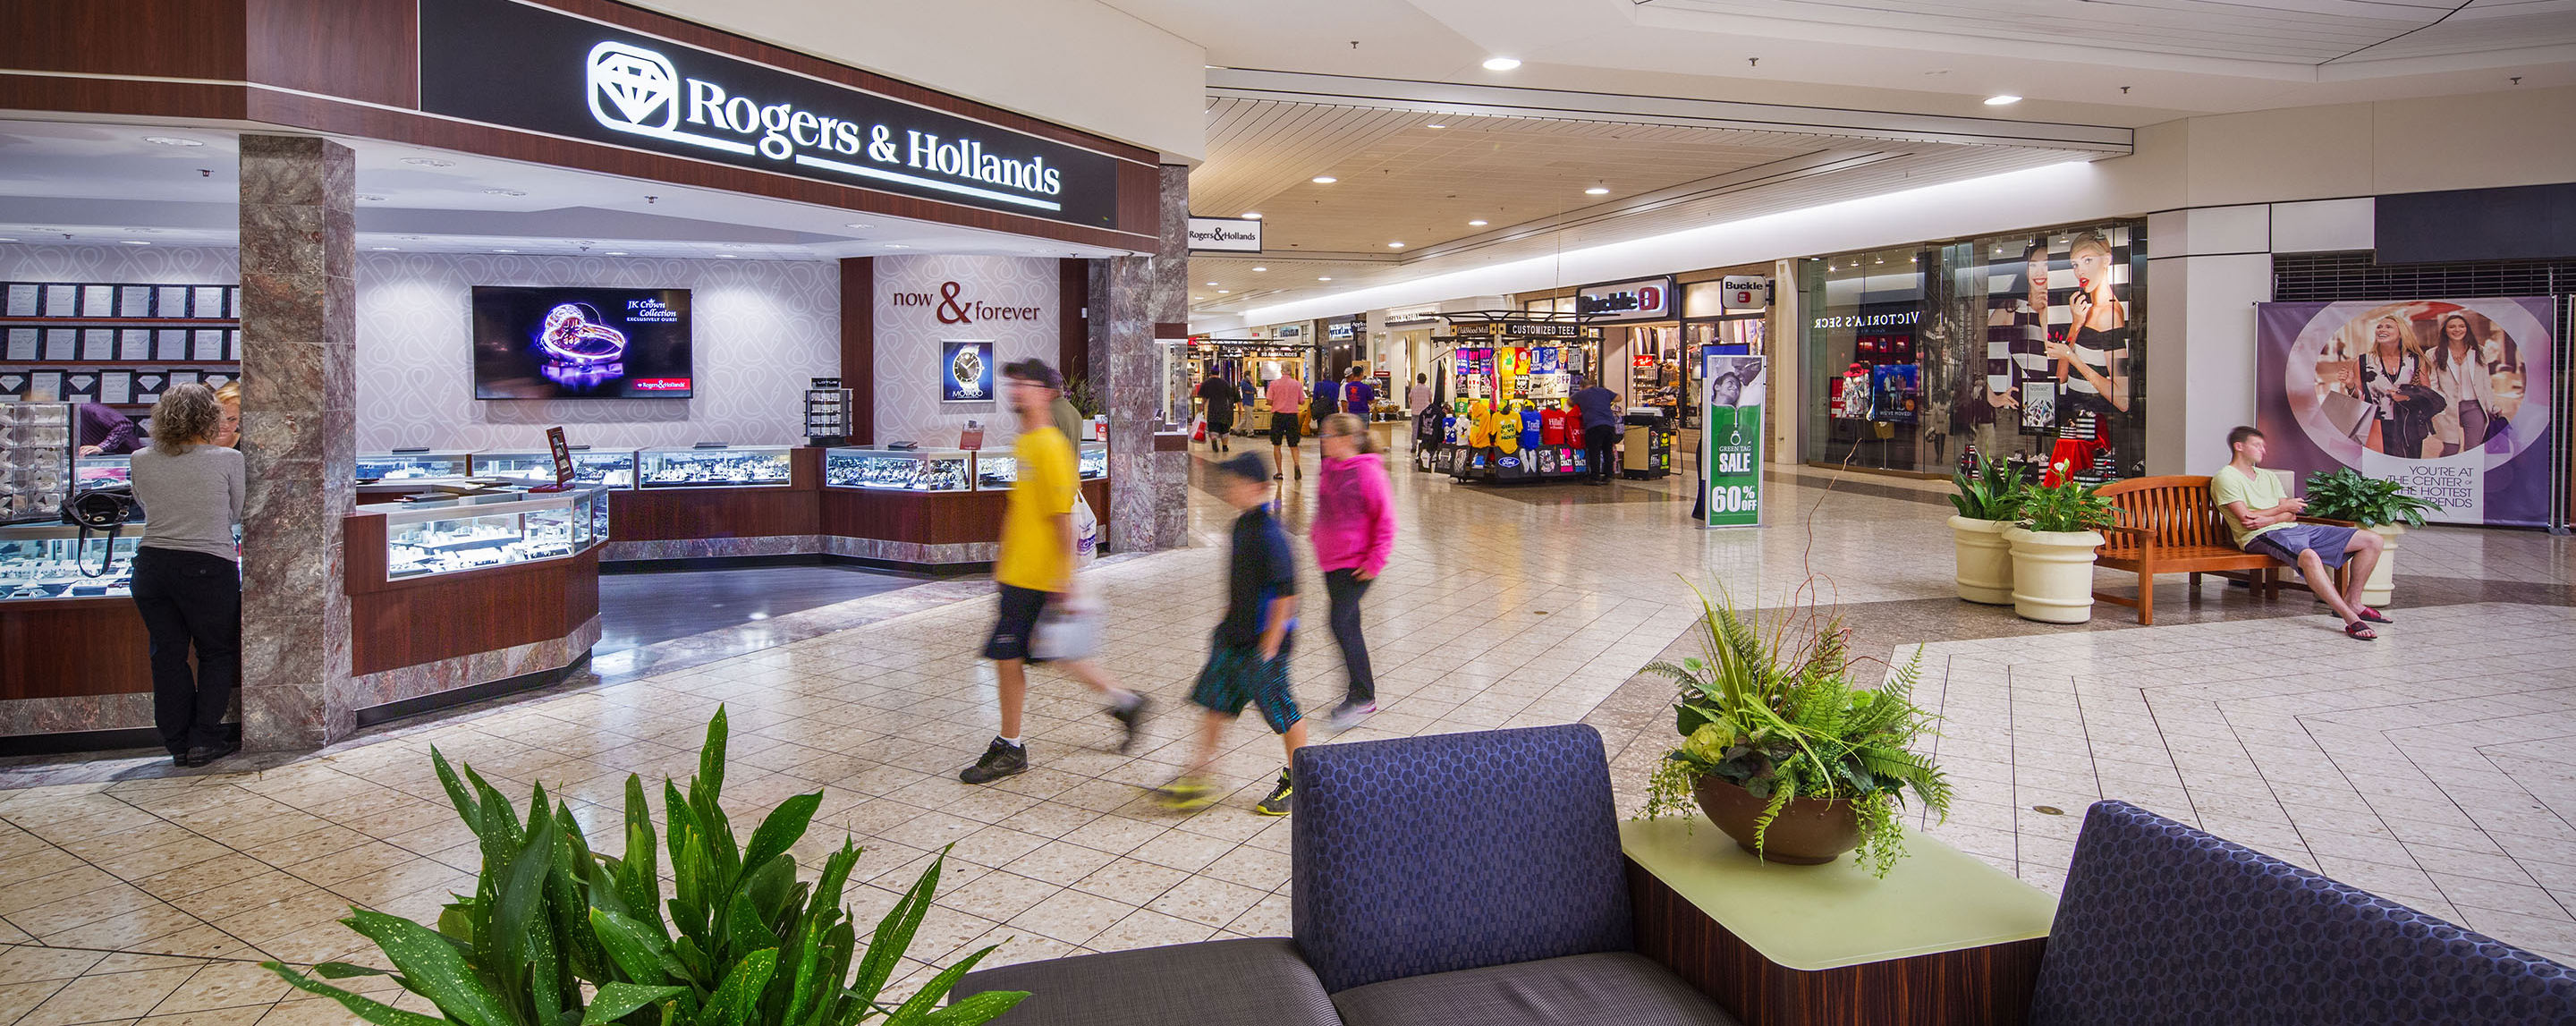 A group of people are walking in an indoor mall towards a Rogers & Hollands store.